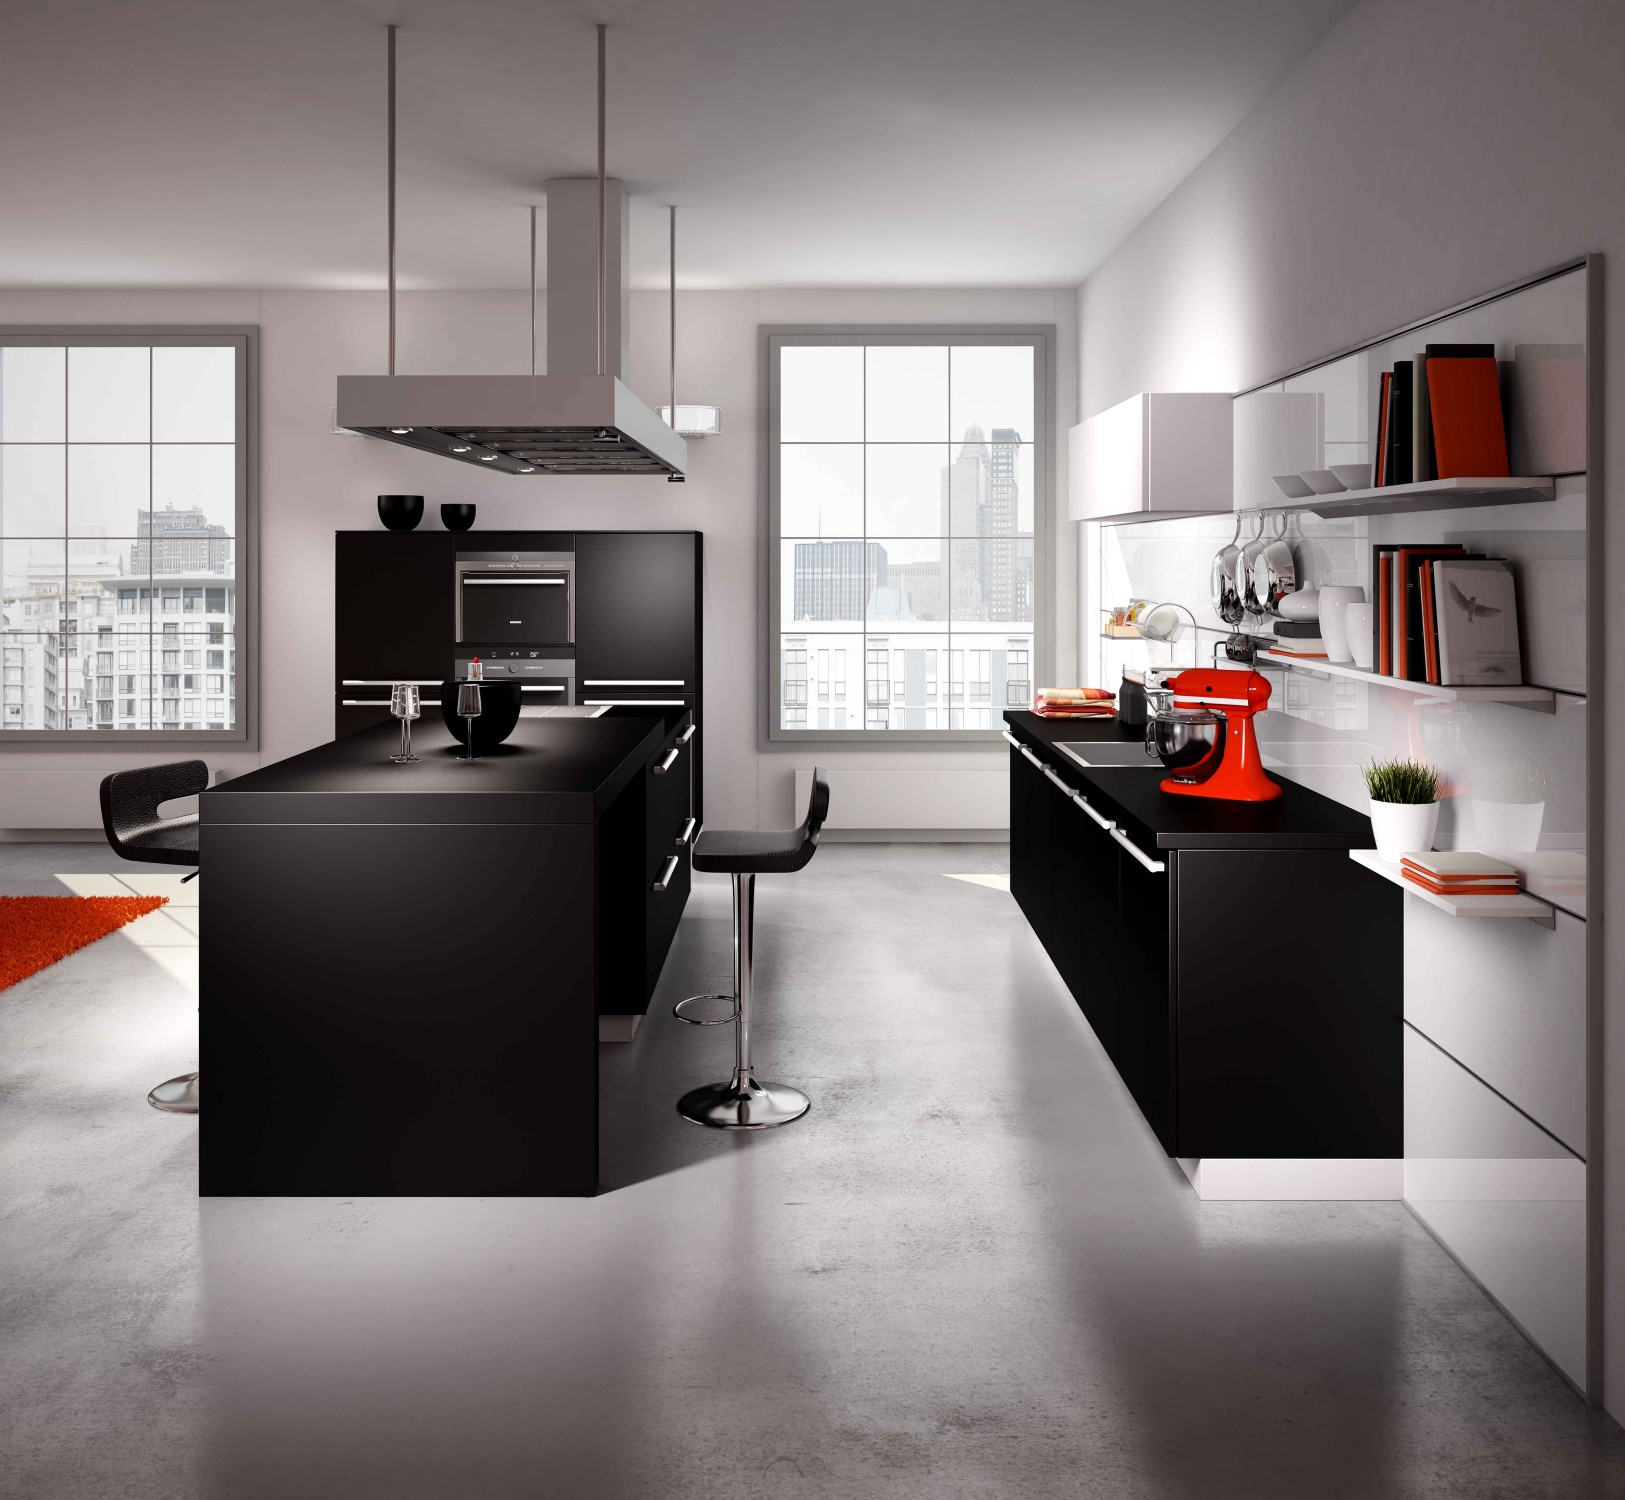 comment choisir le meilleur cuisiniste blog. Black Bedroom Furniture Sets. Home Design Ideas